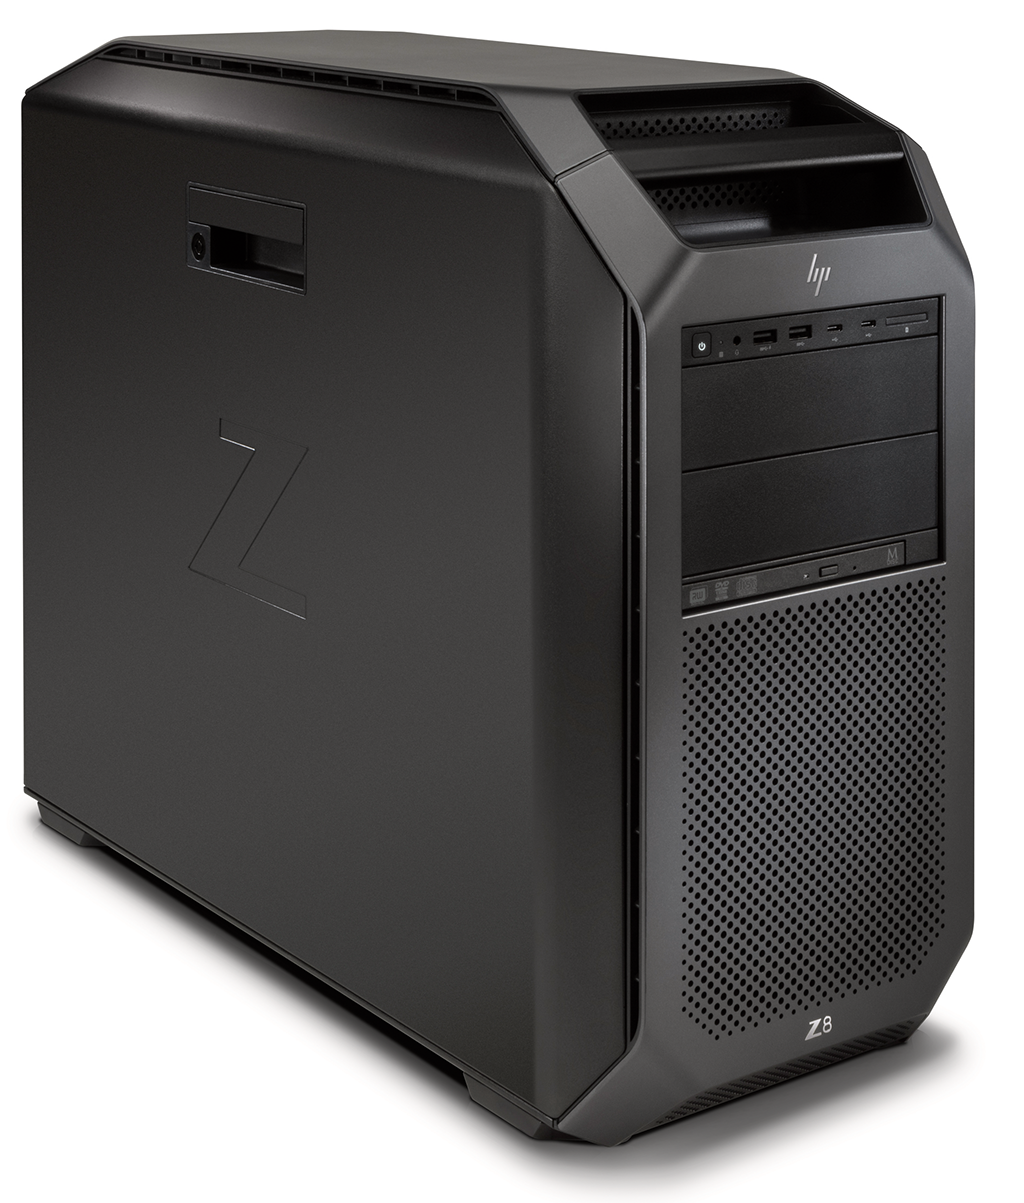 HP Launches New Z Series Workstations | Tom's Hardware